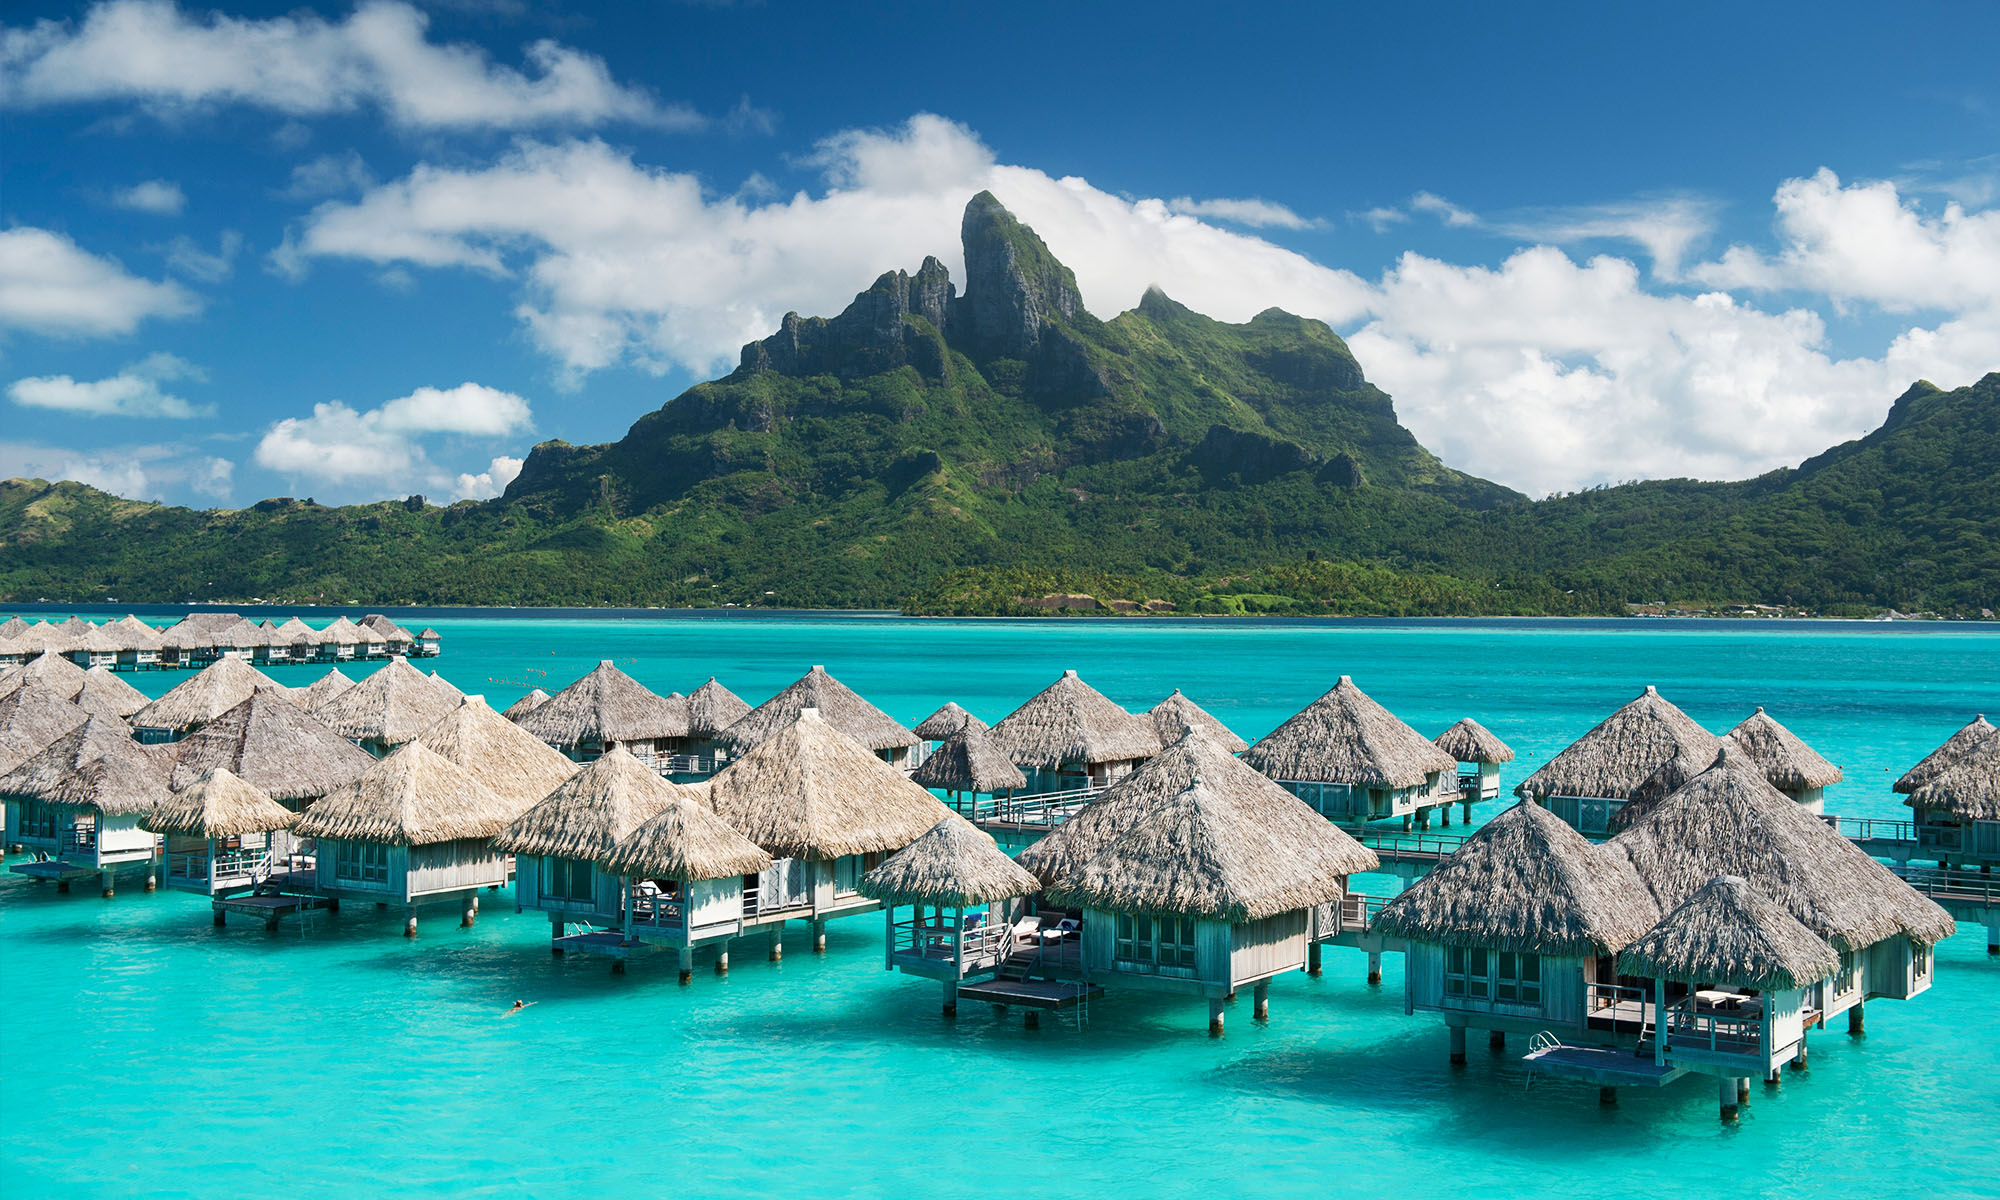 South Pacific Tropical Kingdoms - 14-Day Luxury Cruise From Papeete to AucklandFeb 4 - Feb 19, 2020